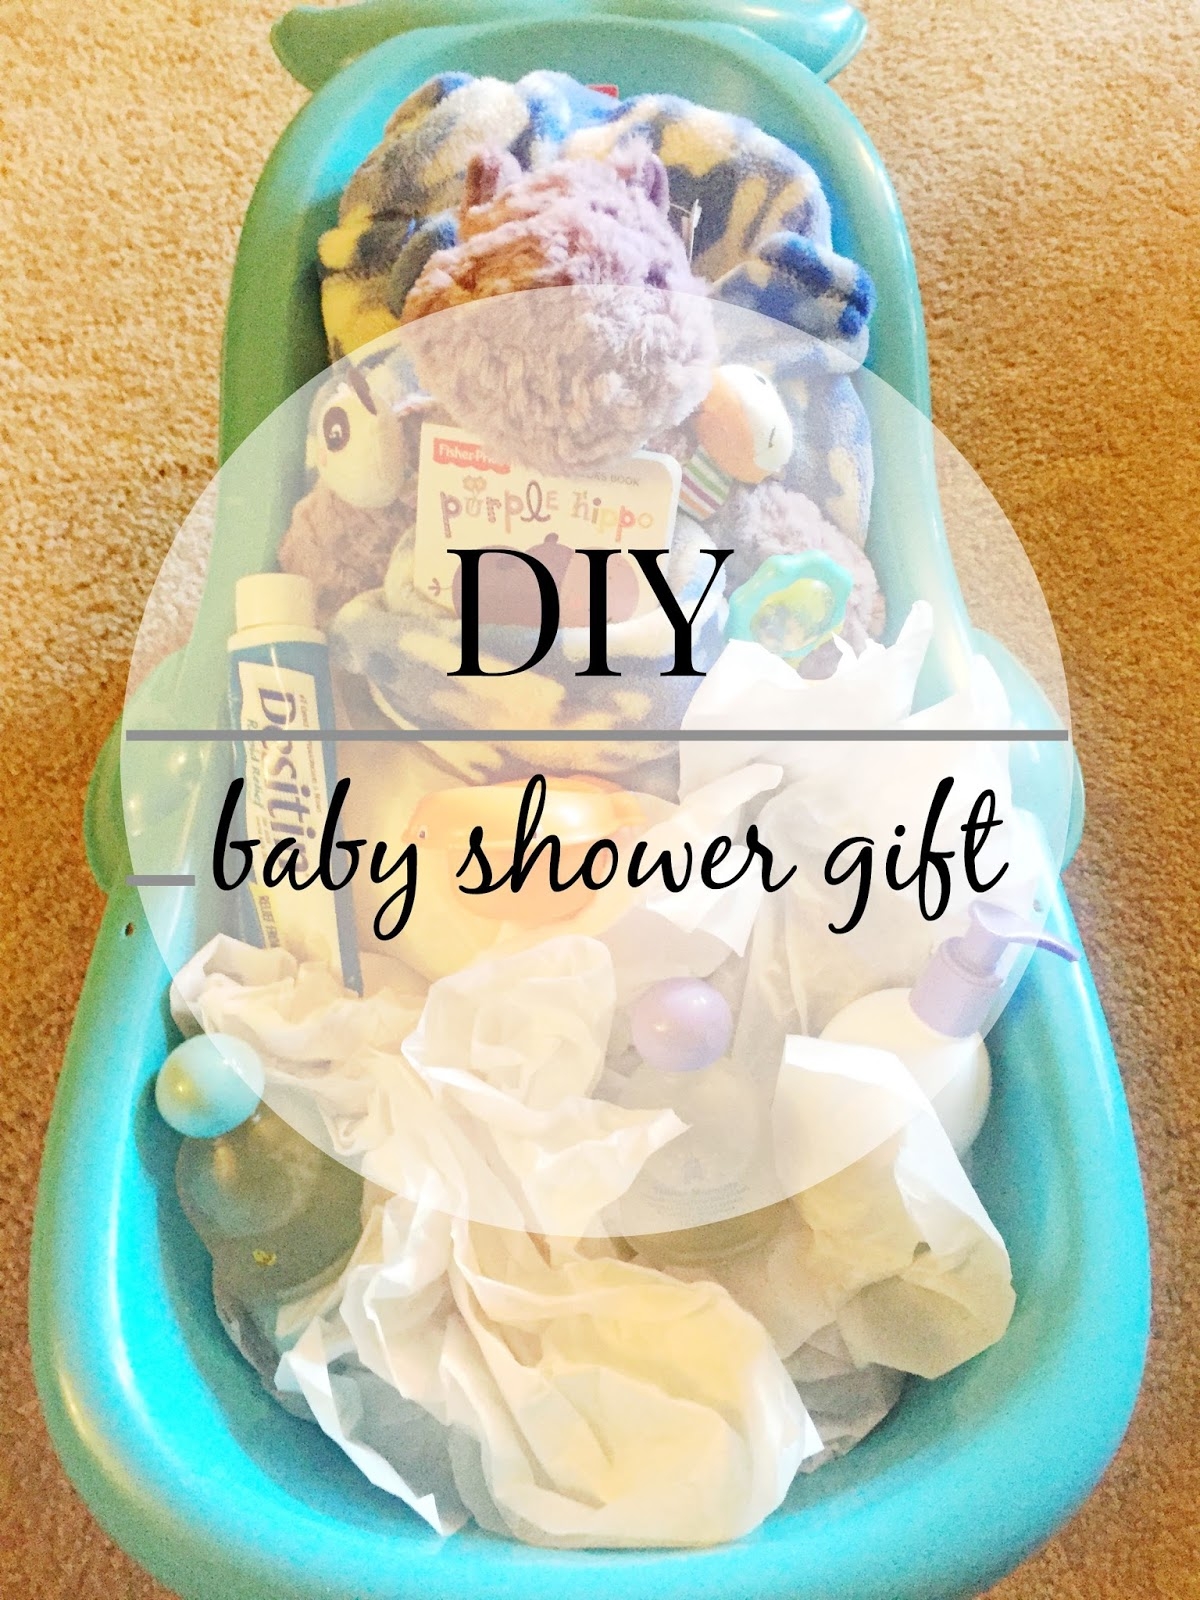 diy baby shower gift  sunny in reno, Baby shower